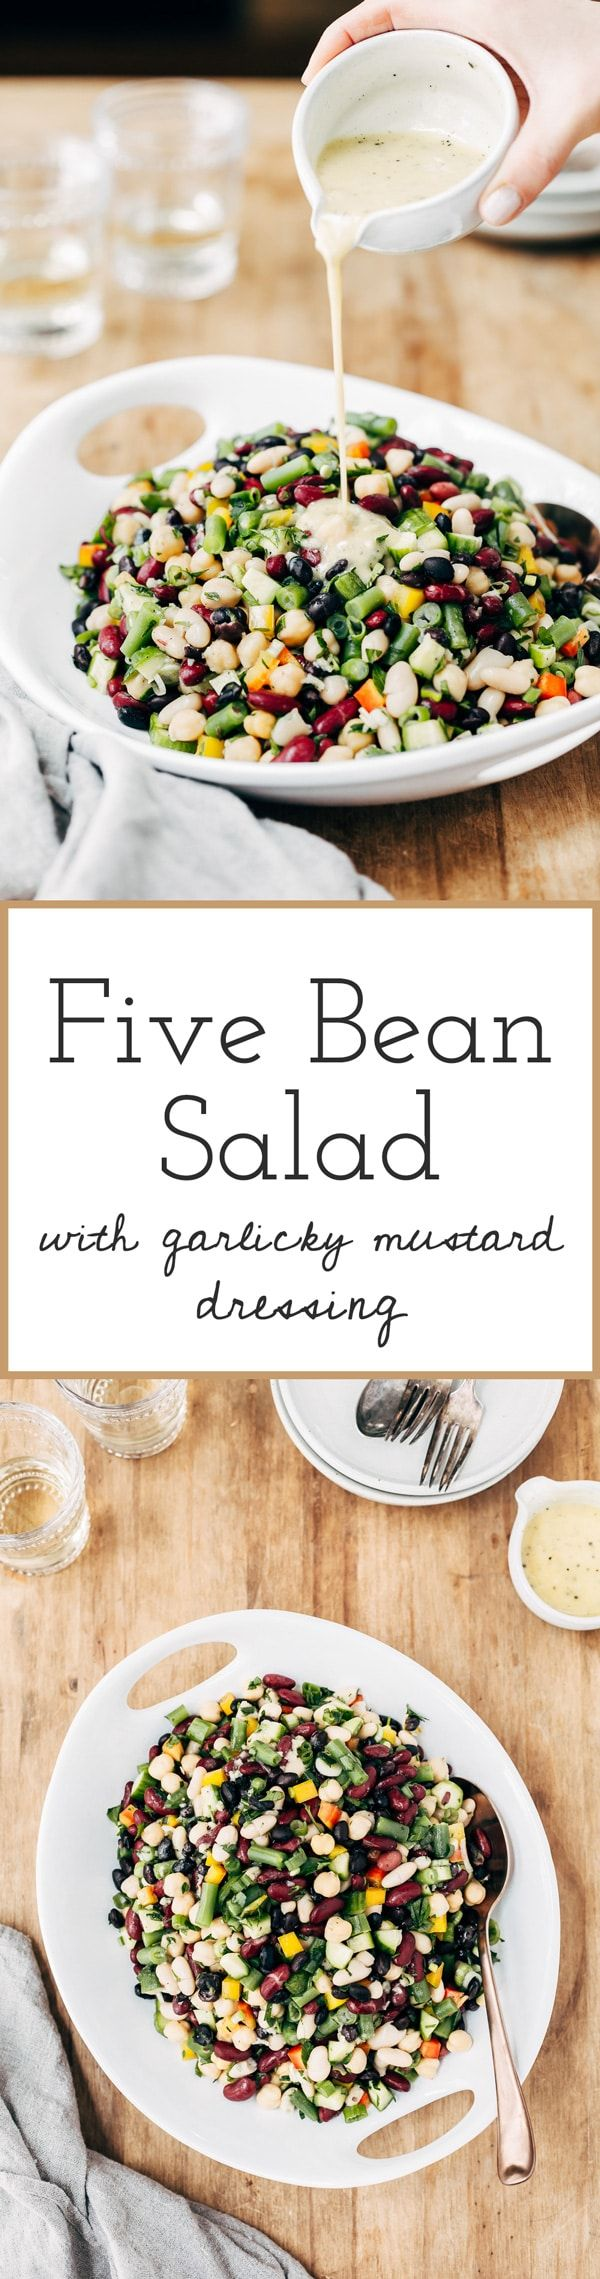 Whether it is for picnic, super bowl party, or a potluck gathering, this #fivebeansalad with 2 different dressing options is guaranteed to impress.